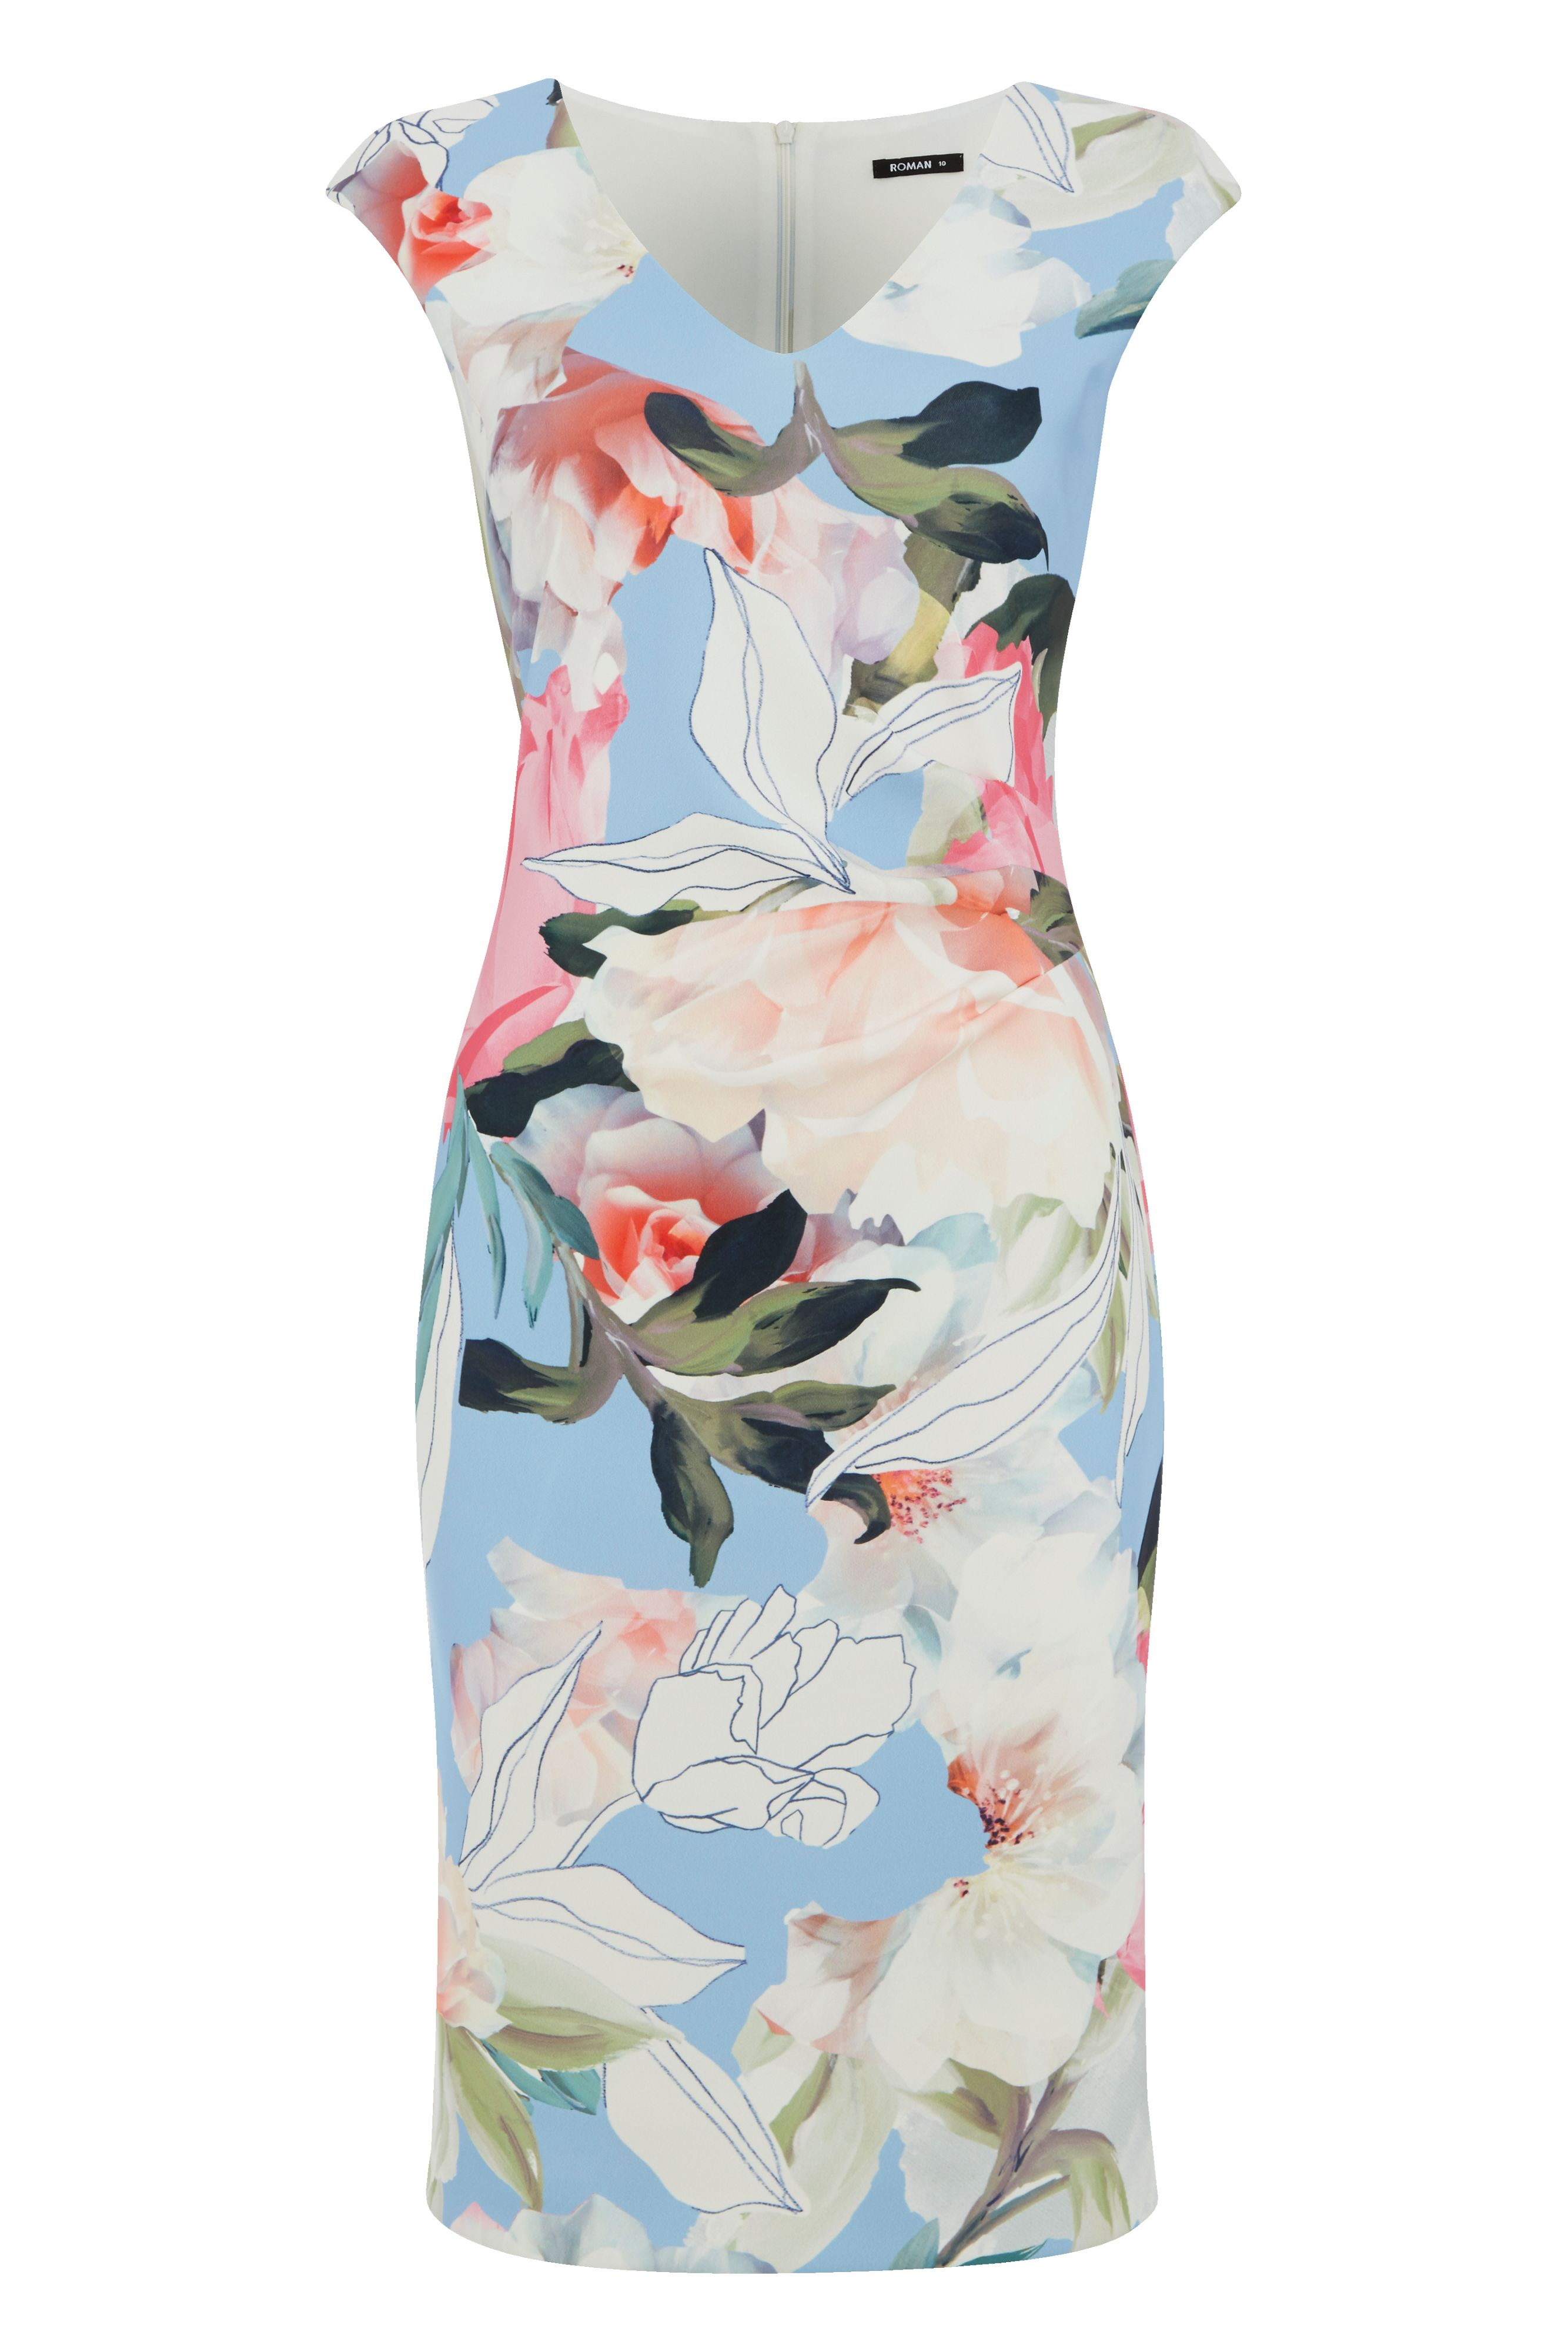 Roman Originals Floral Scuba Print Dress, Multi-Coloured